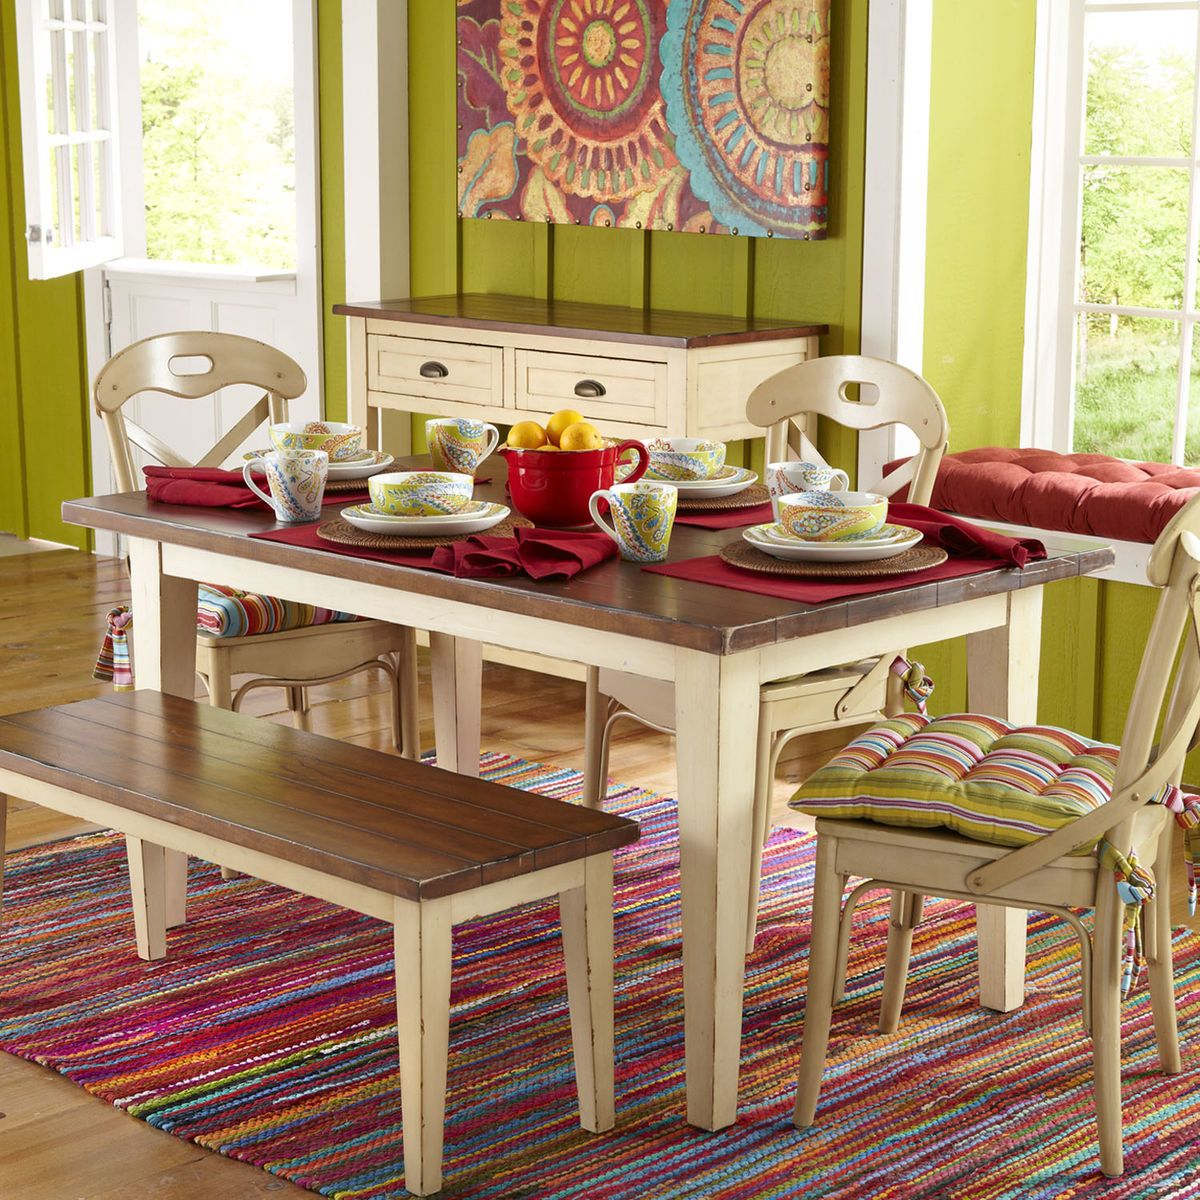 Carmichael Antique Ivory Dining Table  Ivory Breakfast Nooks And Entrancing Ivory Dining Room Set Design Ideas